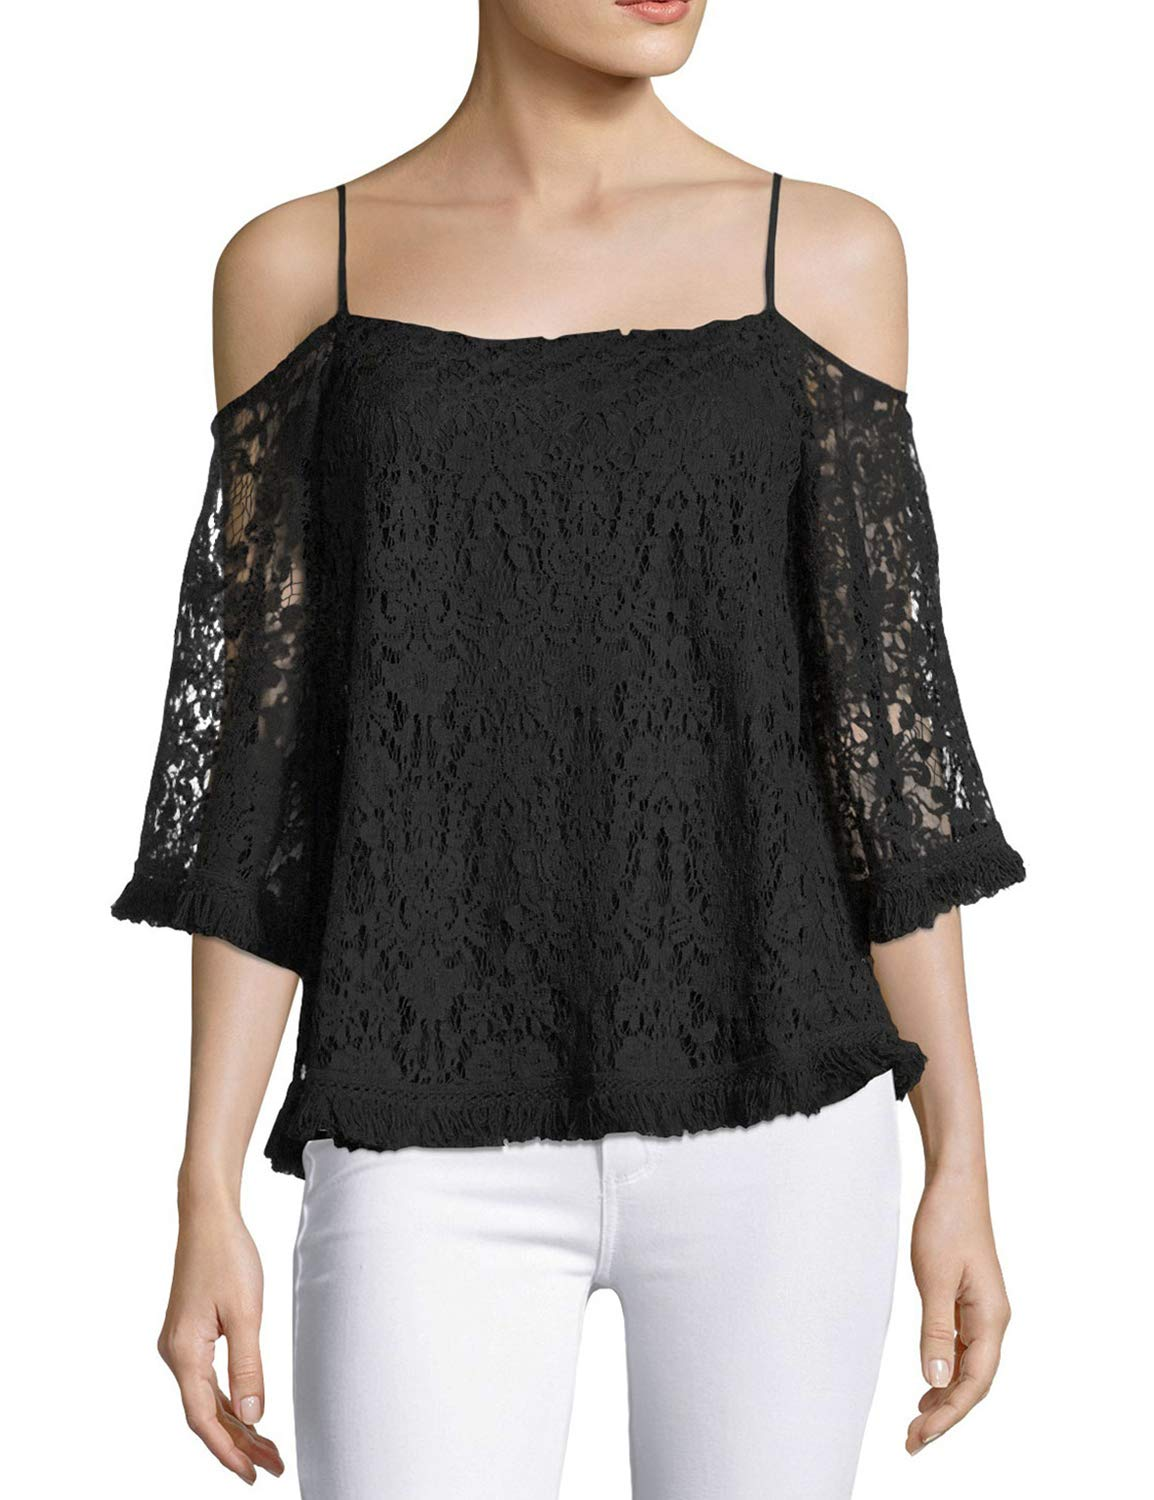 Blooming Jelly Womens Lace Top Off Shoulder Loose Tops Slip T Shirts Tee Shirt Black